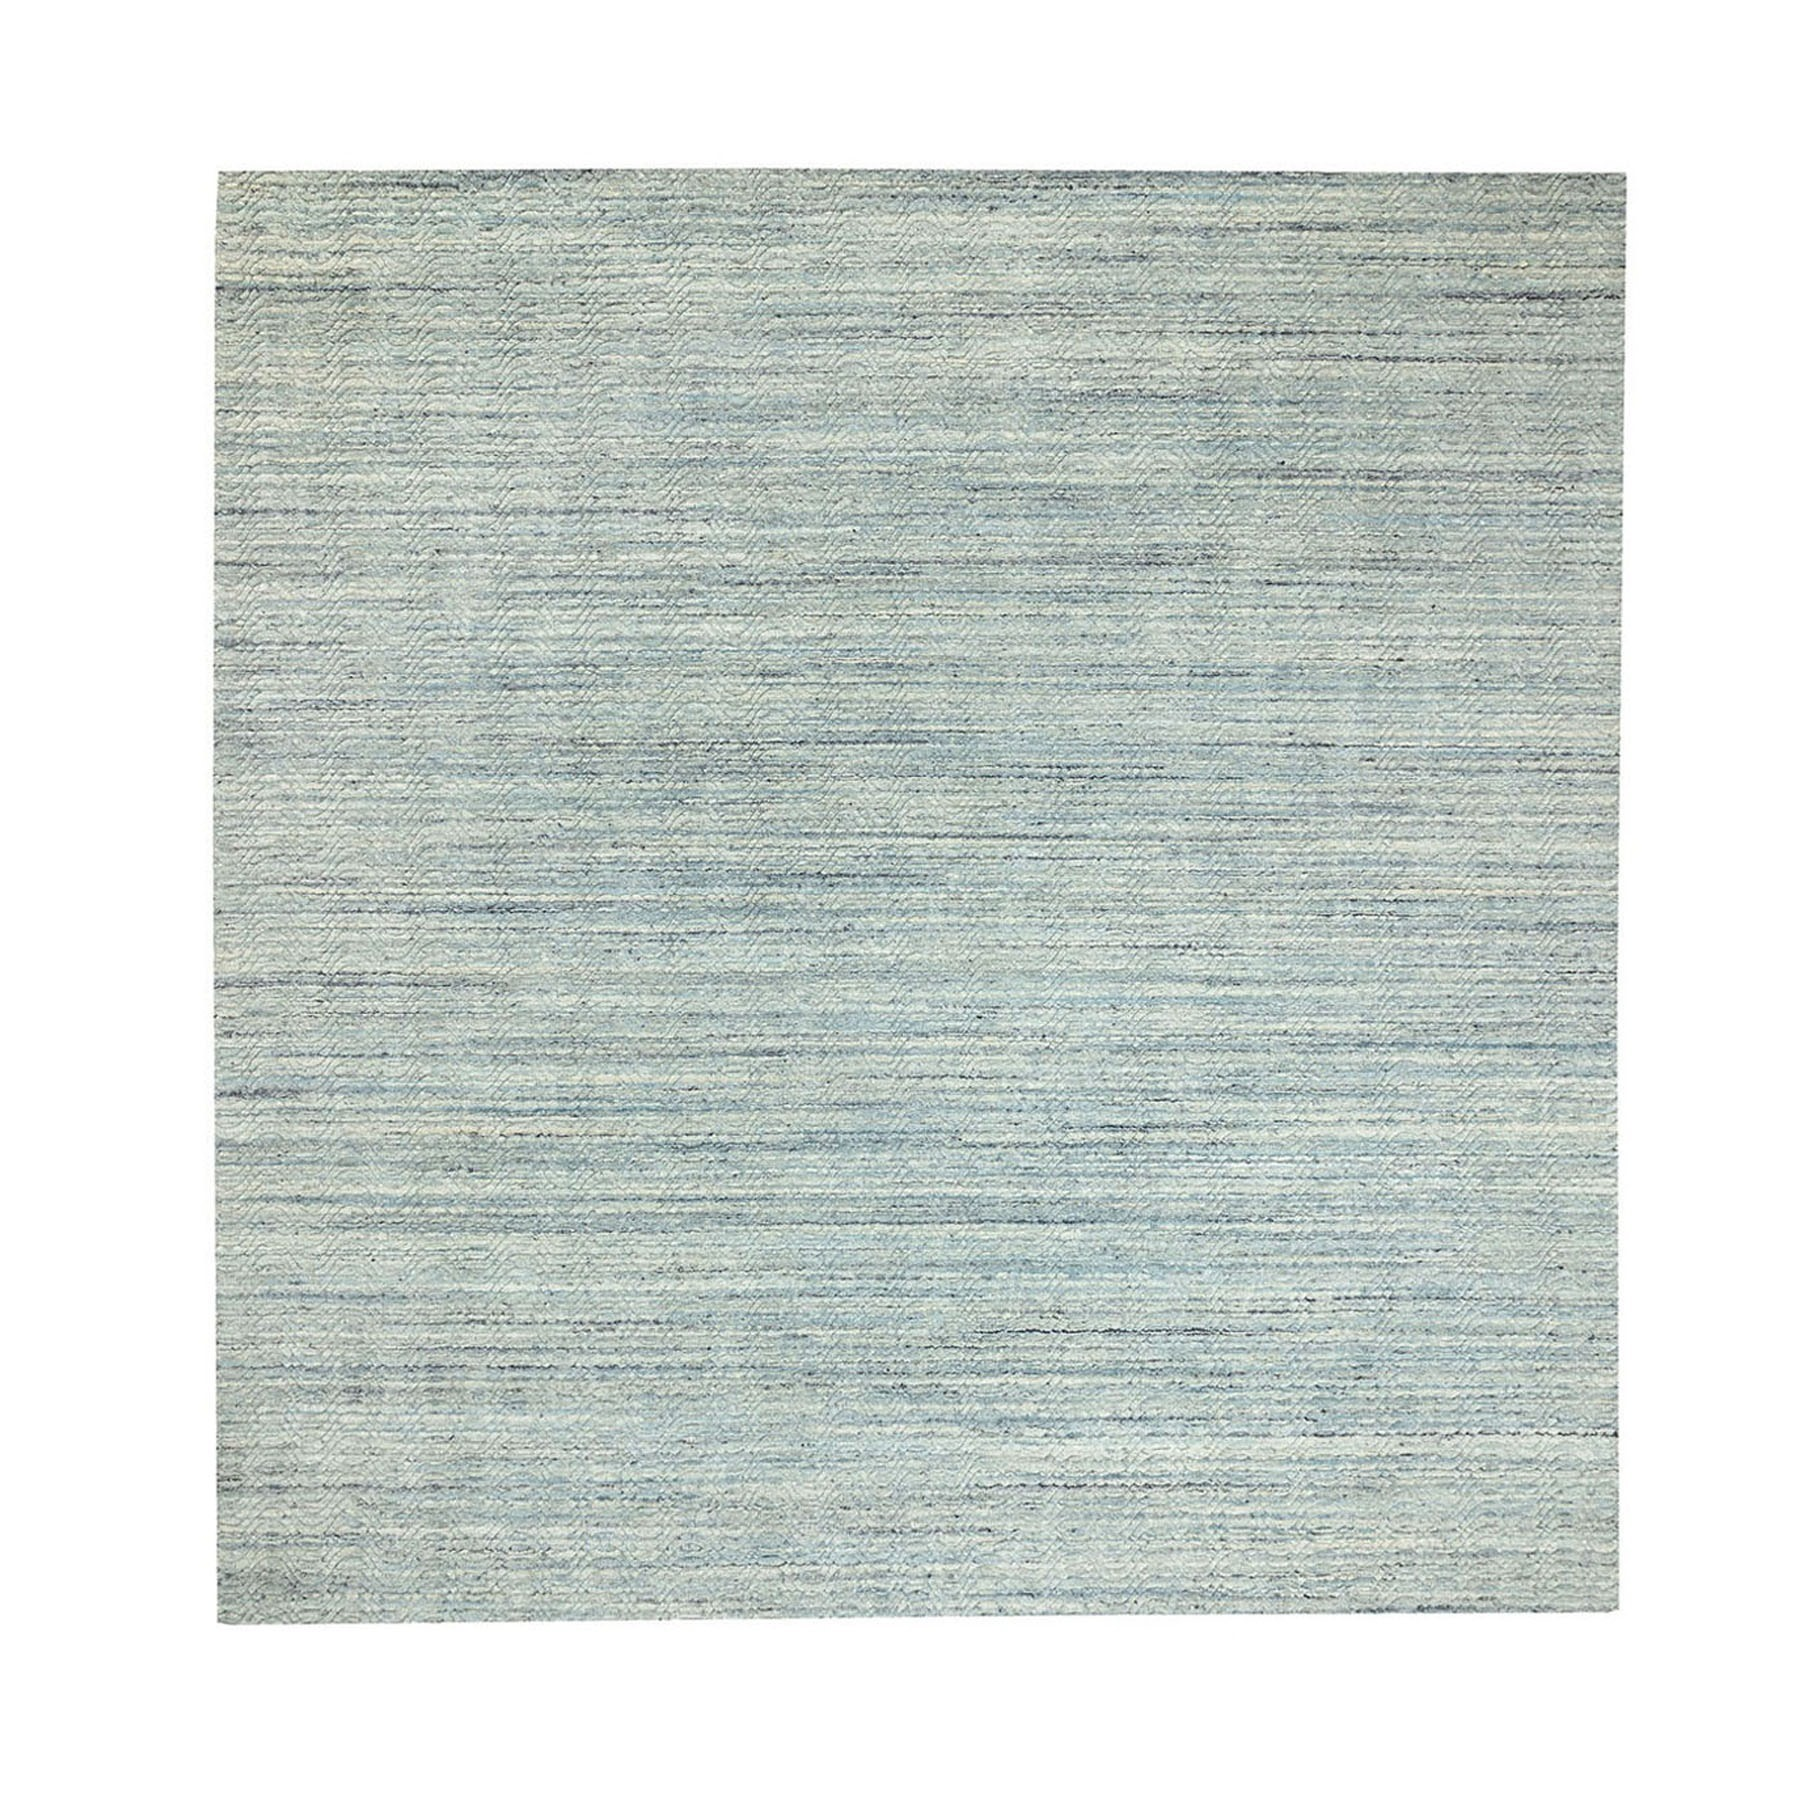 Mid Century Modern Collection Hand Loomed Grey Rug No: 1124104